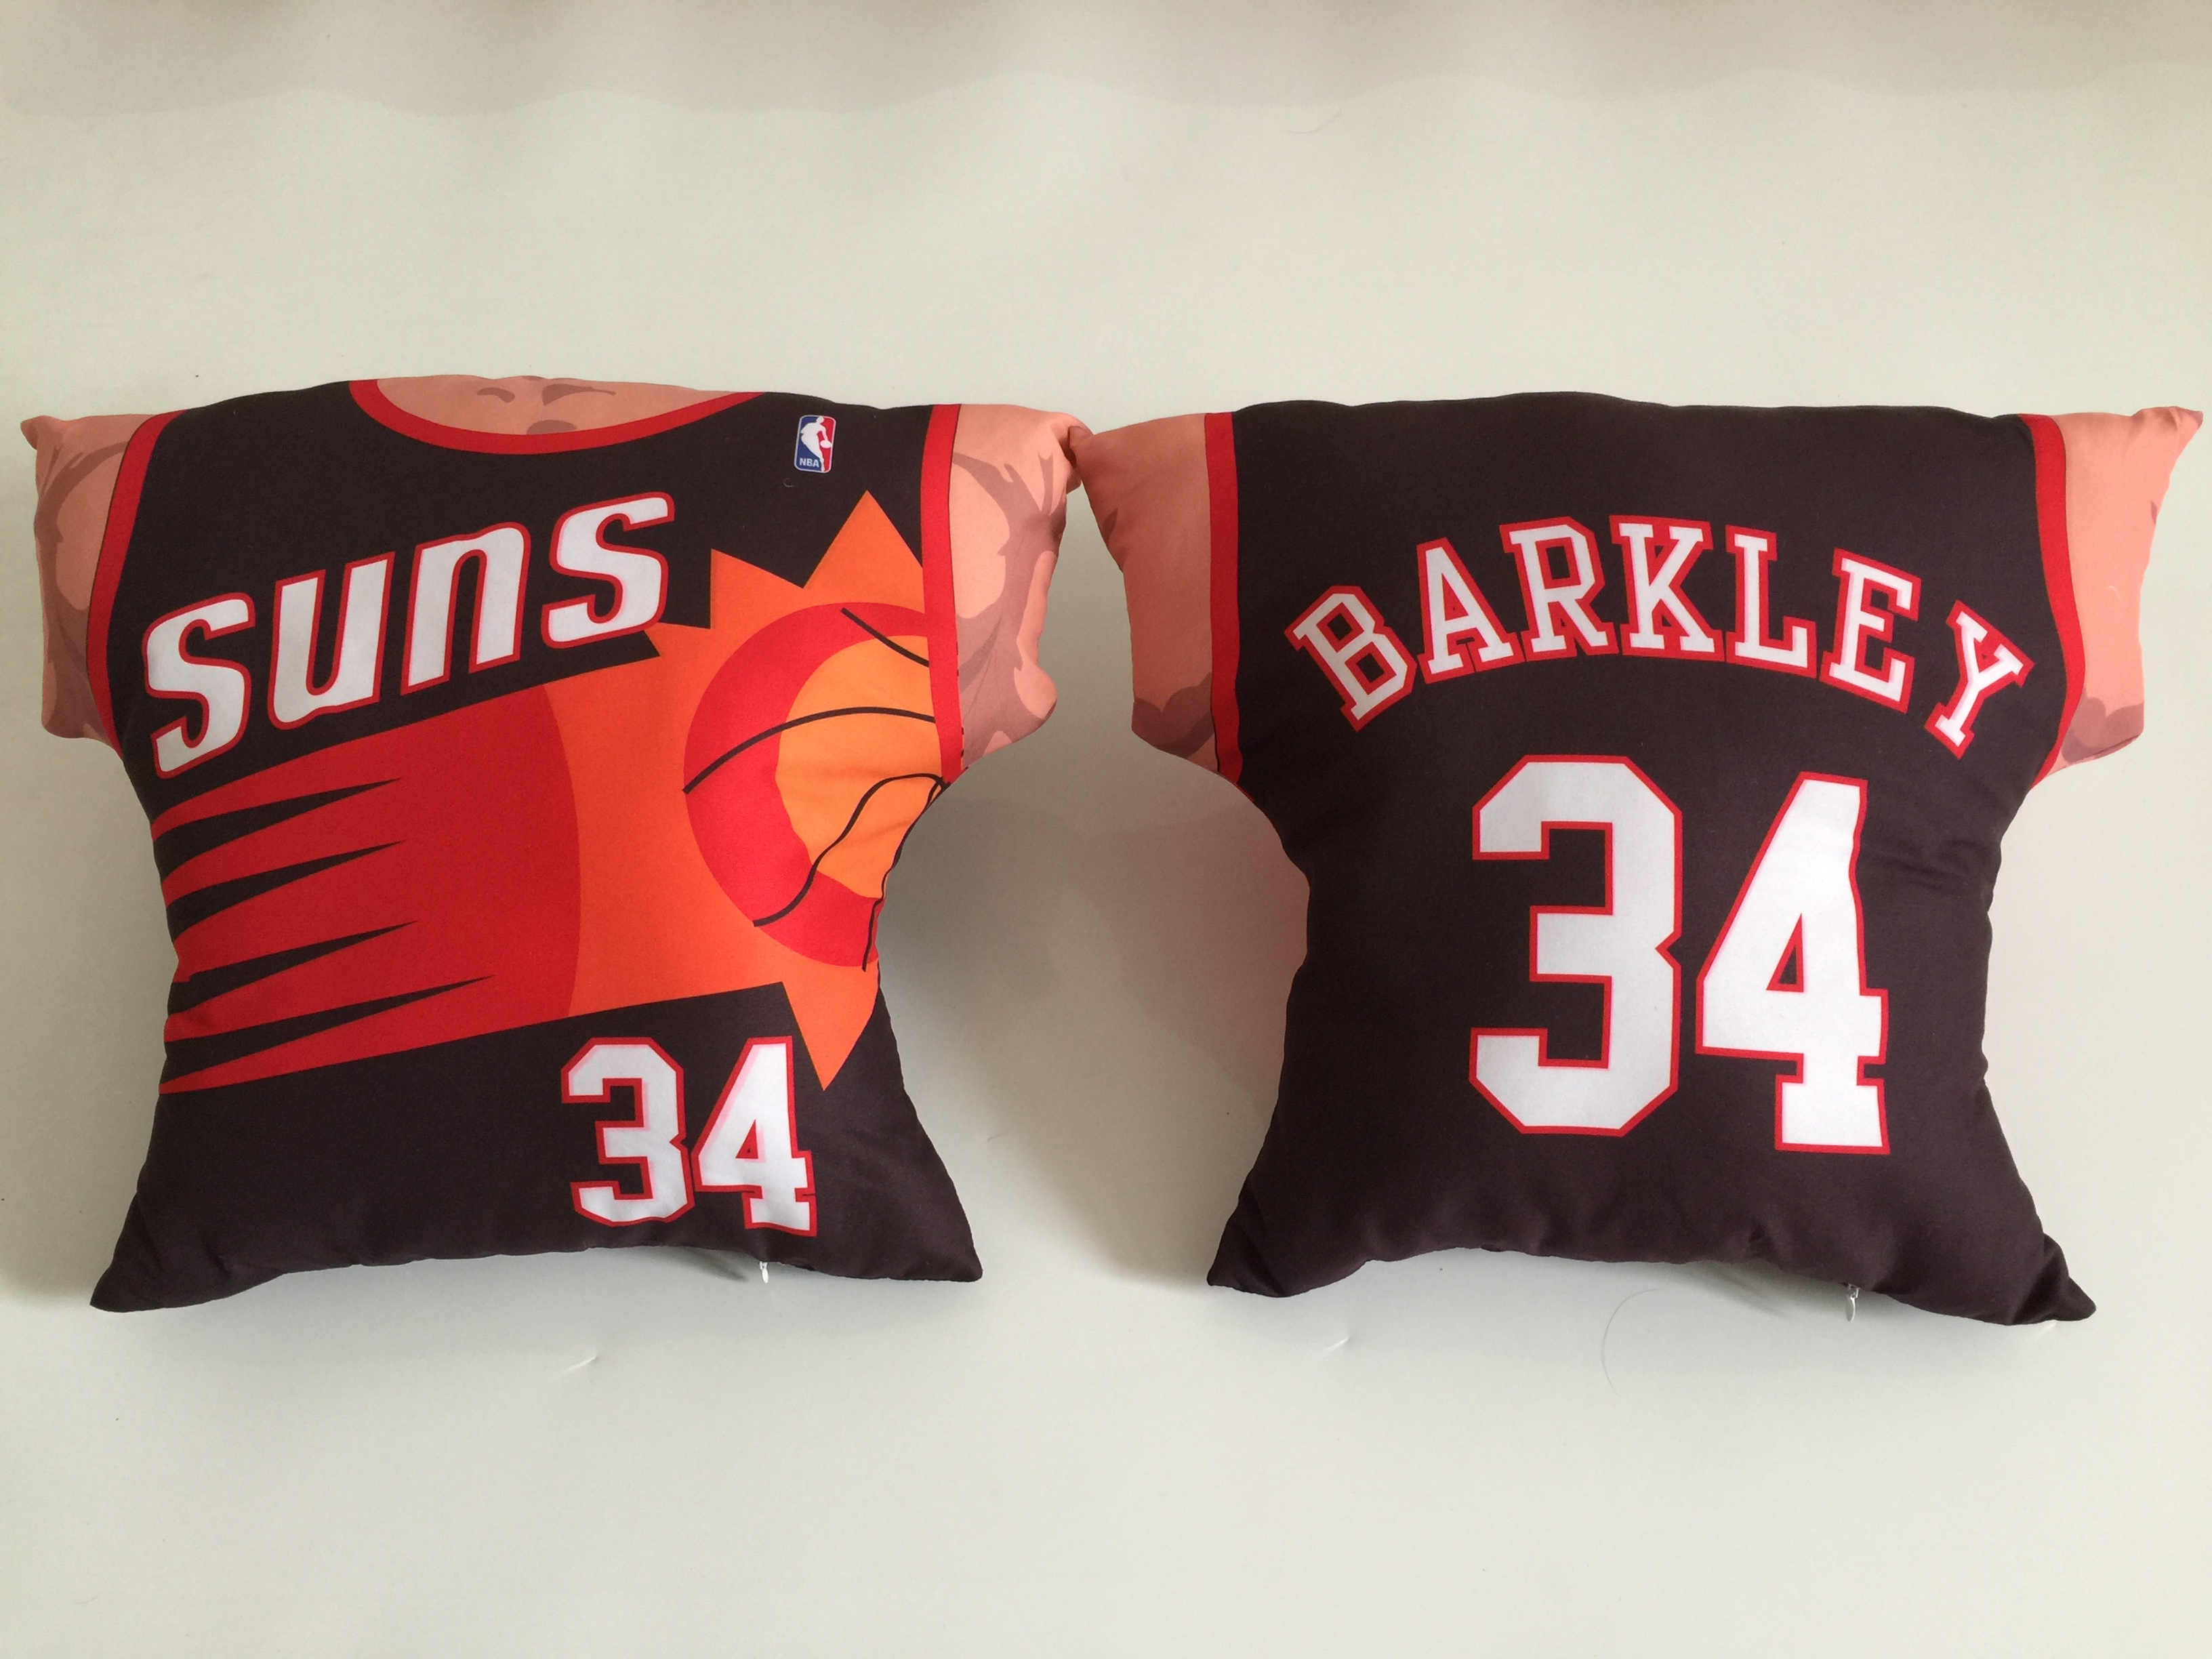 Phoenix Suns 34 Charles Barkley Black NBA Pillow